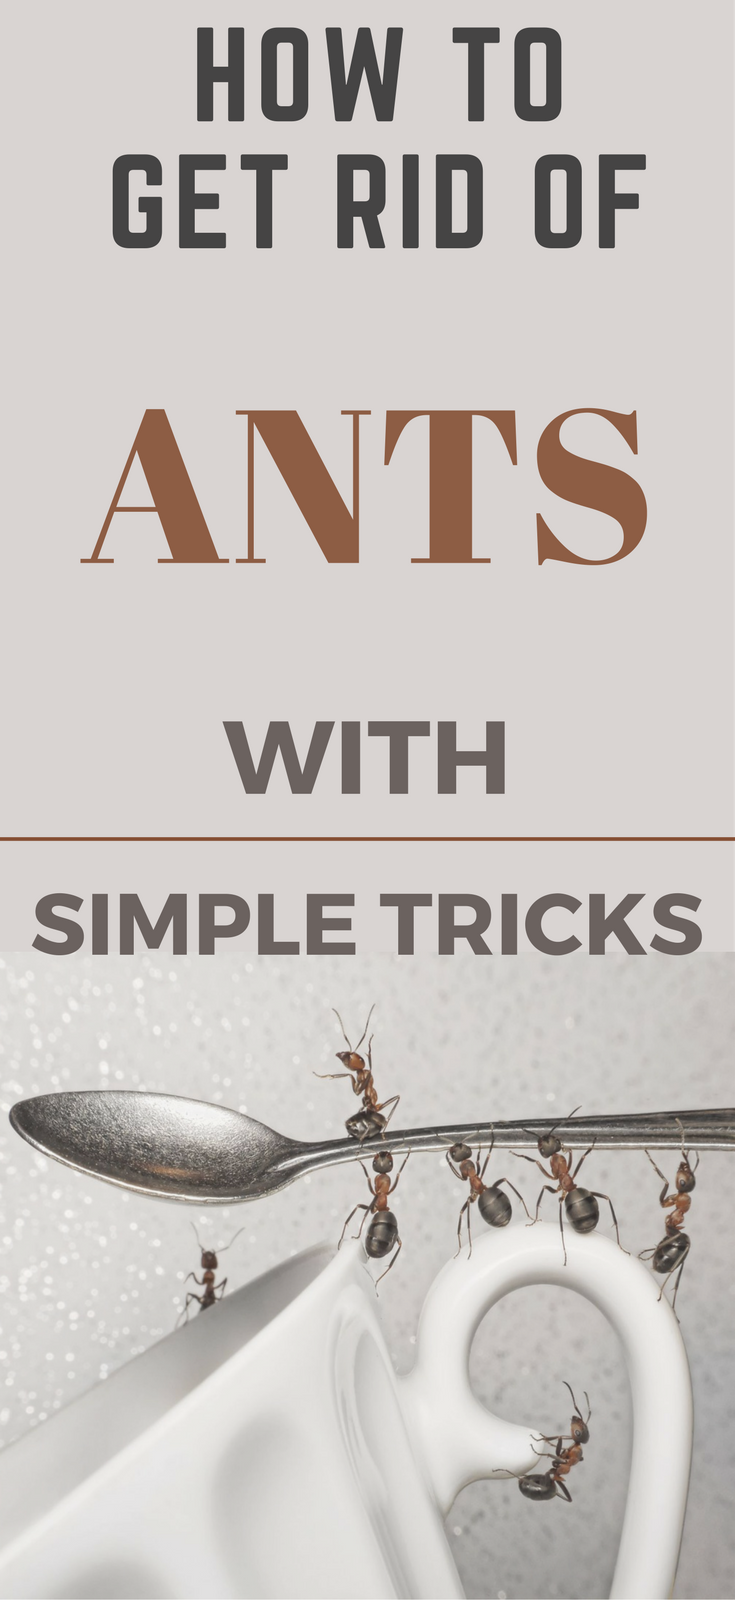 How To Get Rid Of Ants In The Kitchen With Simple Tricks    TopCleaningTips.com